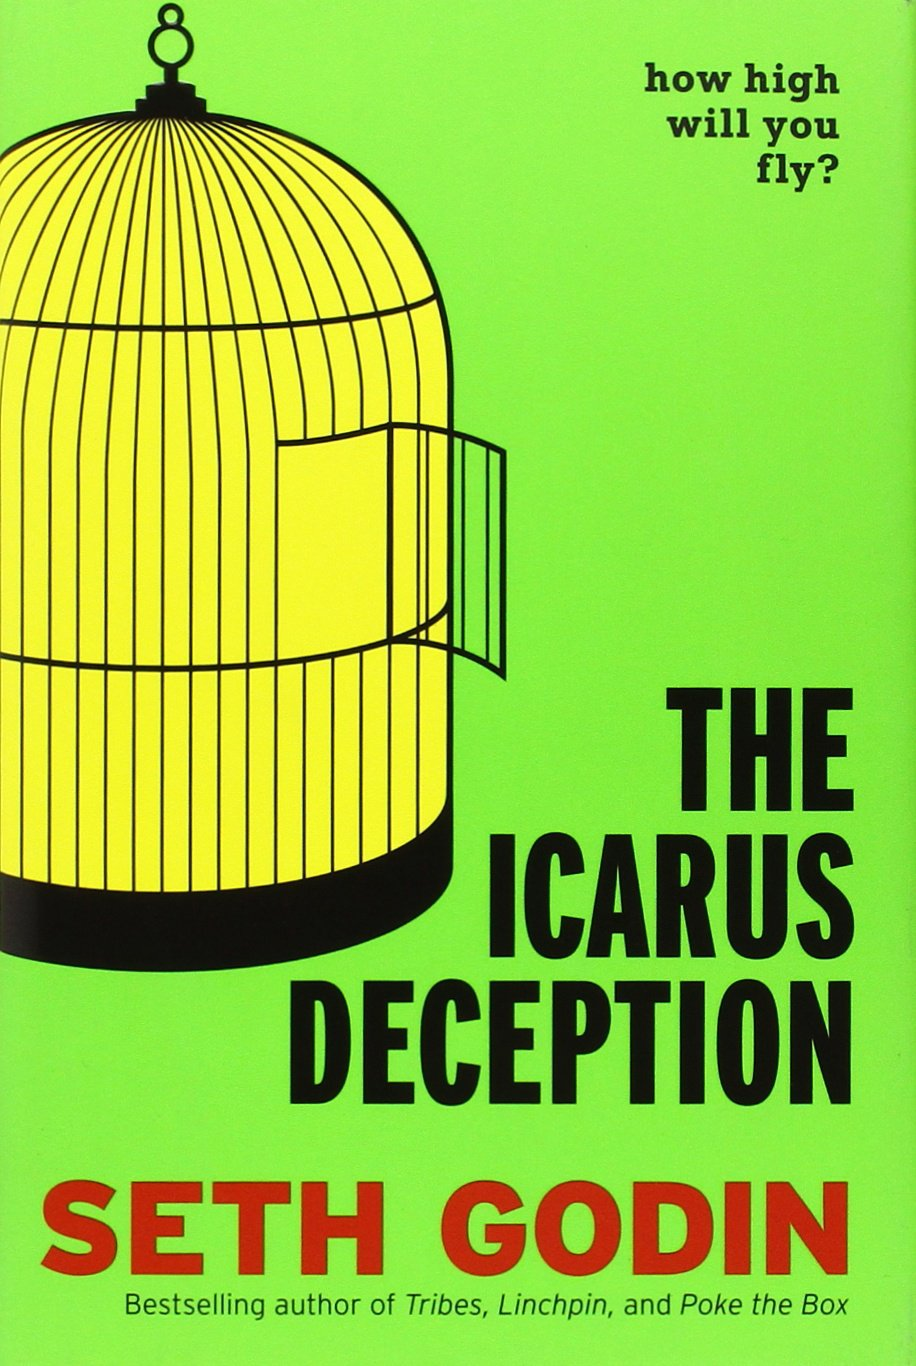 Image result for icarus deception seth godin